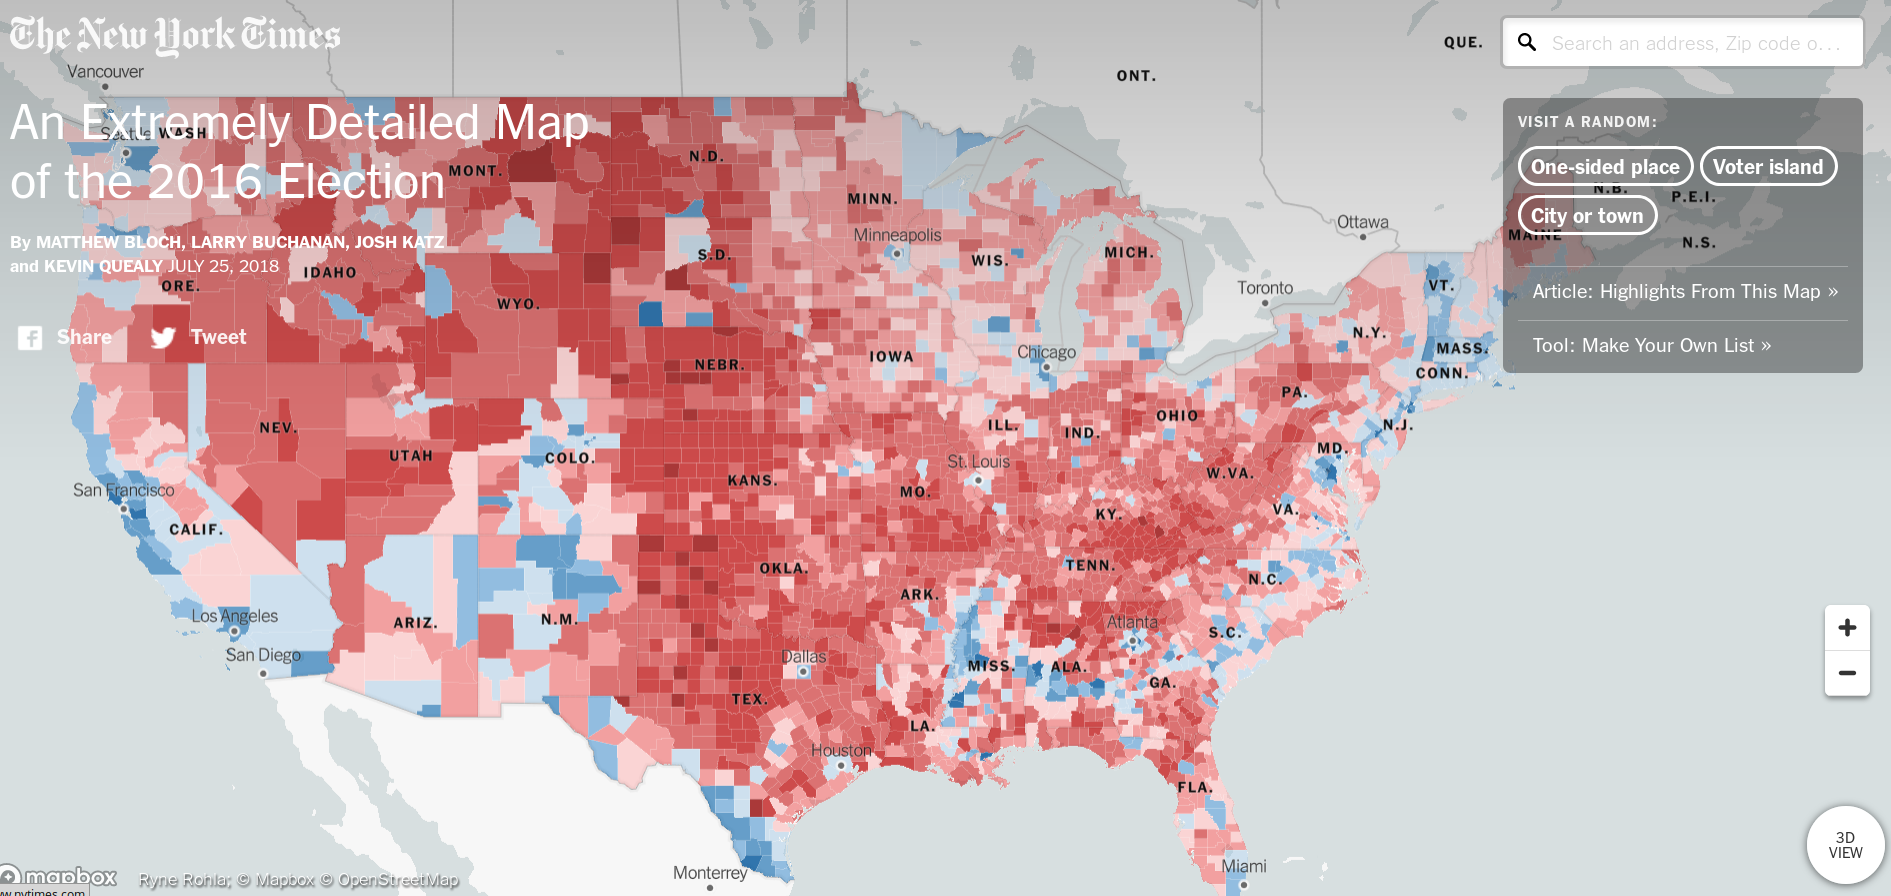 """Data from NYT's """"An Extremely Detailed Map of the 2016 Election"""